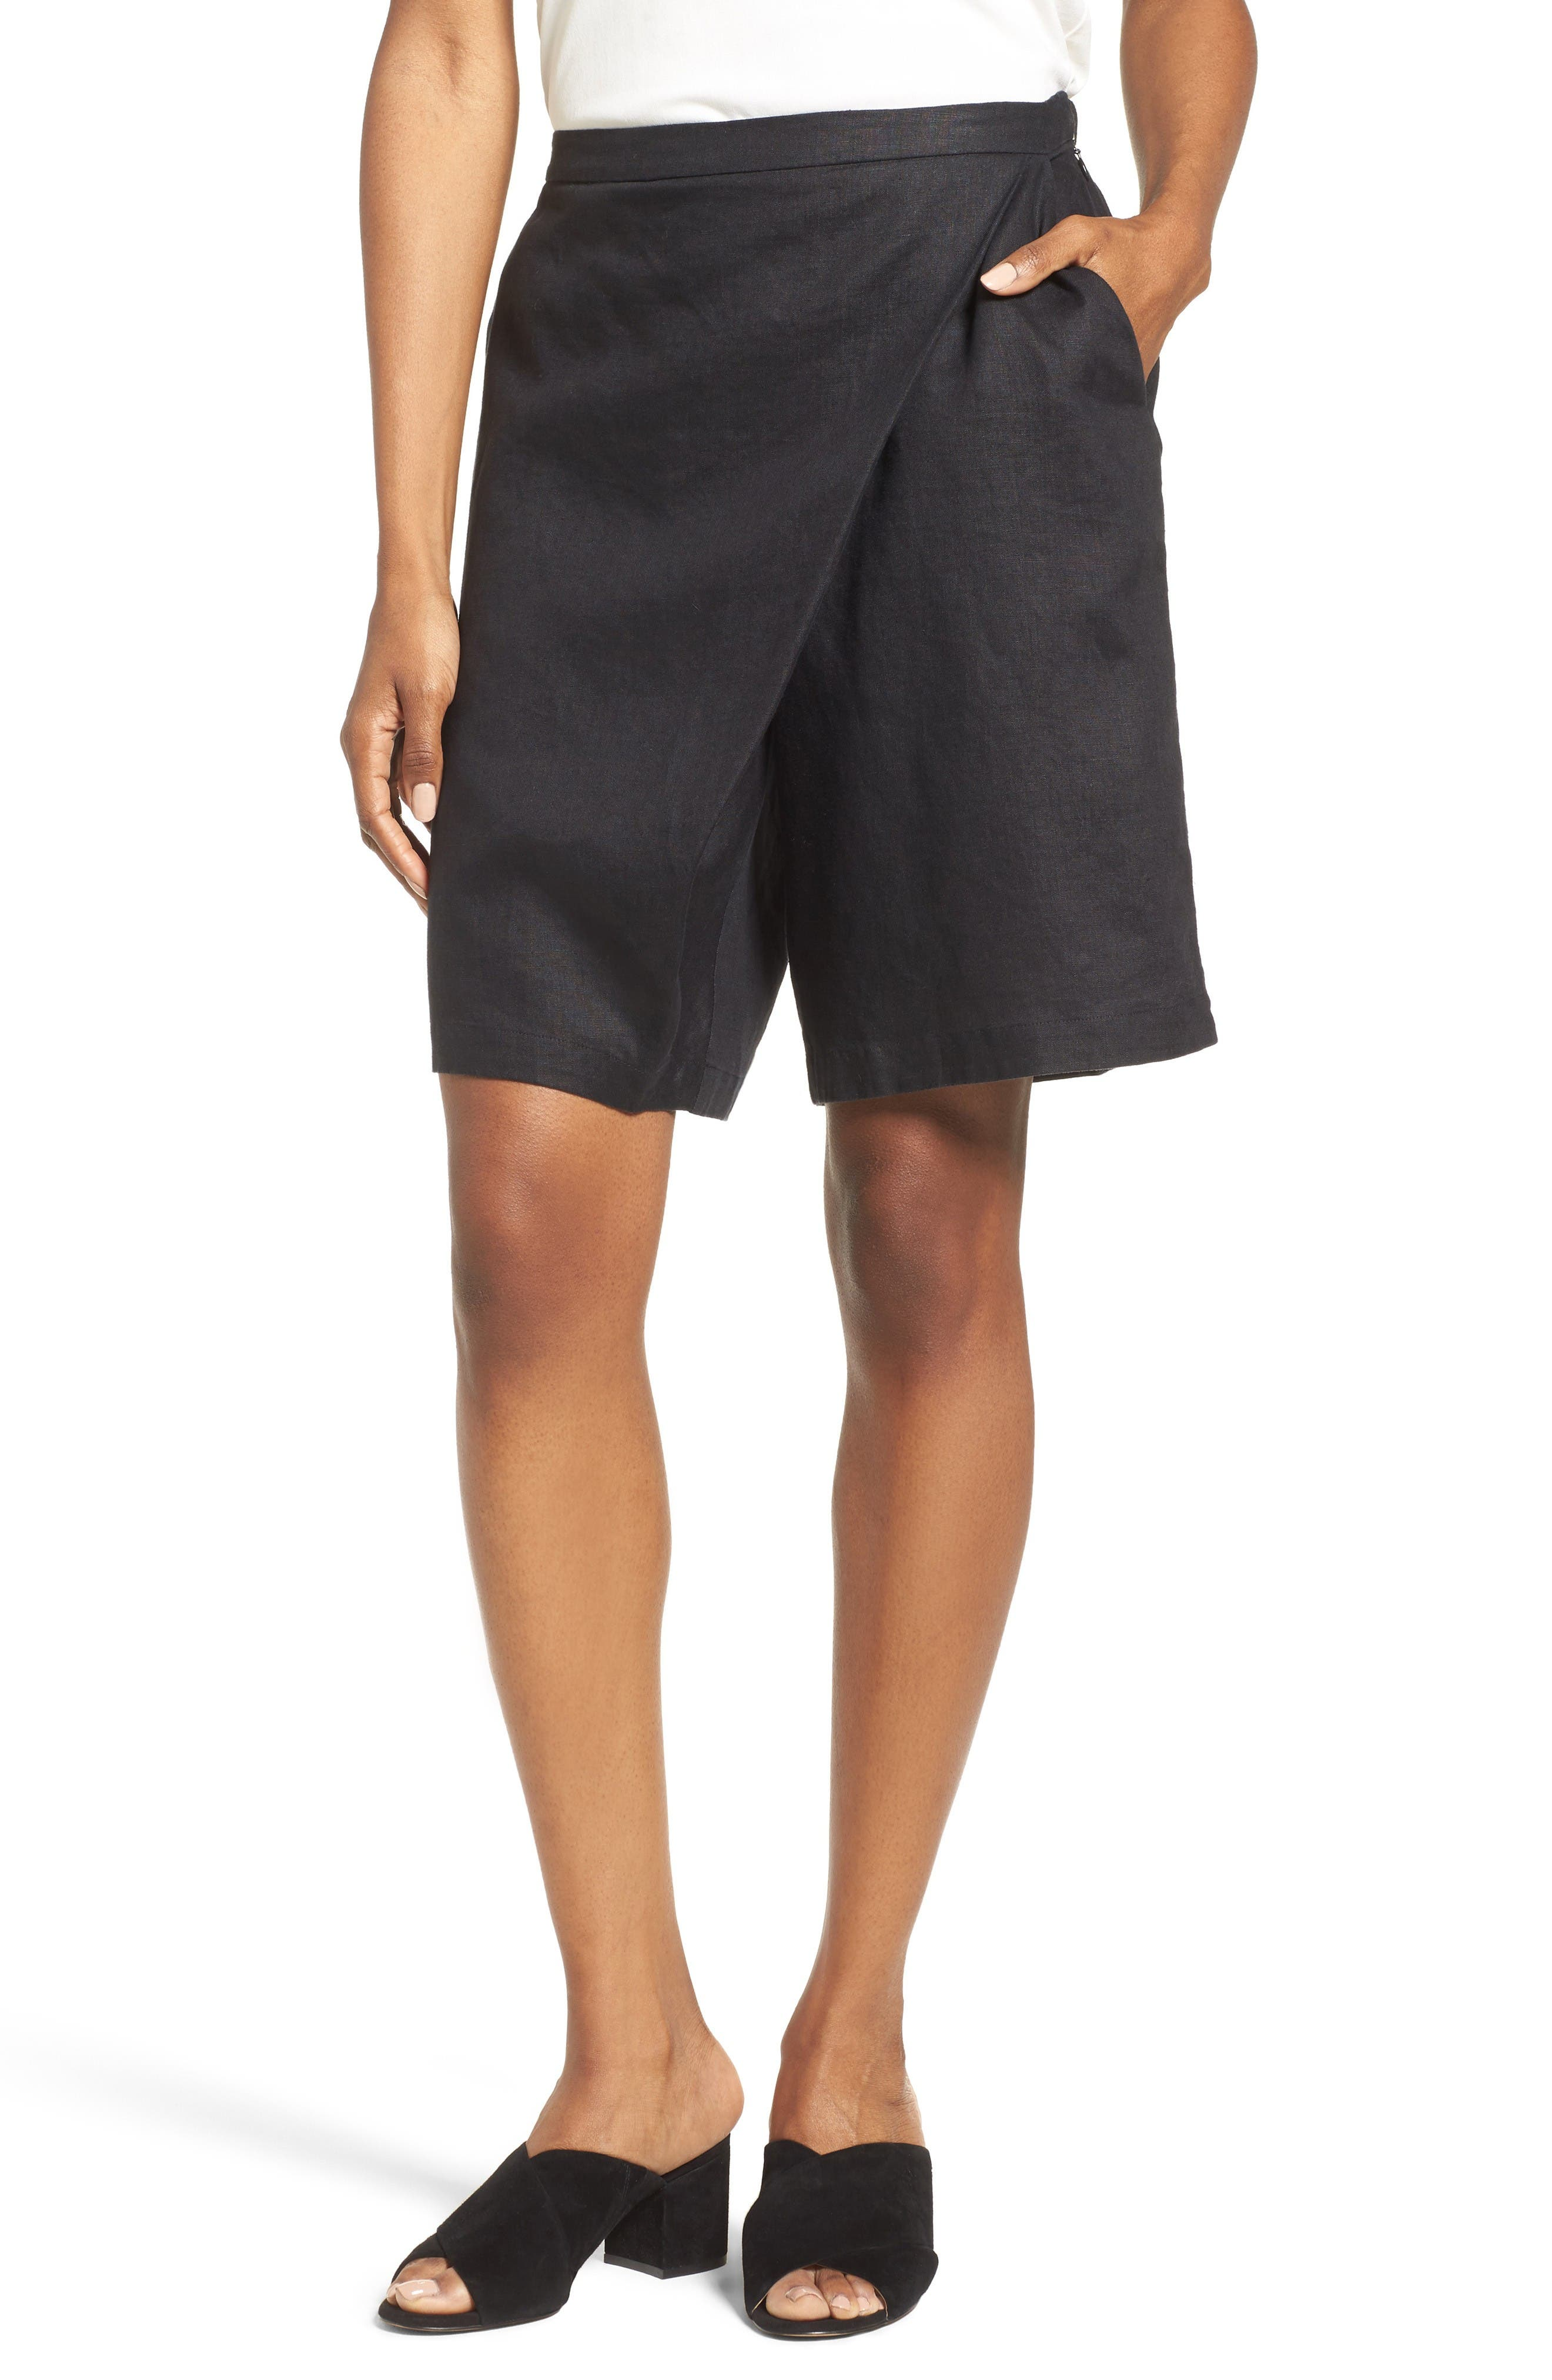 Alternate Image 1 Selected - Eileen Fisher Organic Linen Sarong Shorts (Nordstrom Exclusive)